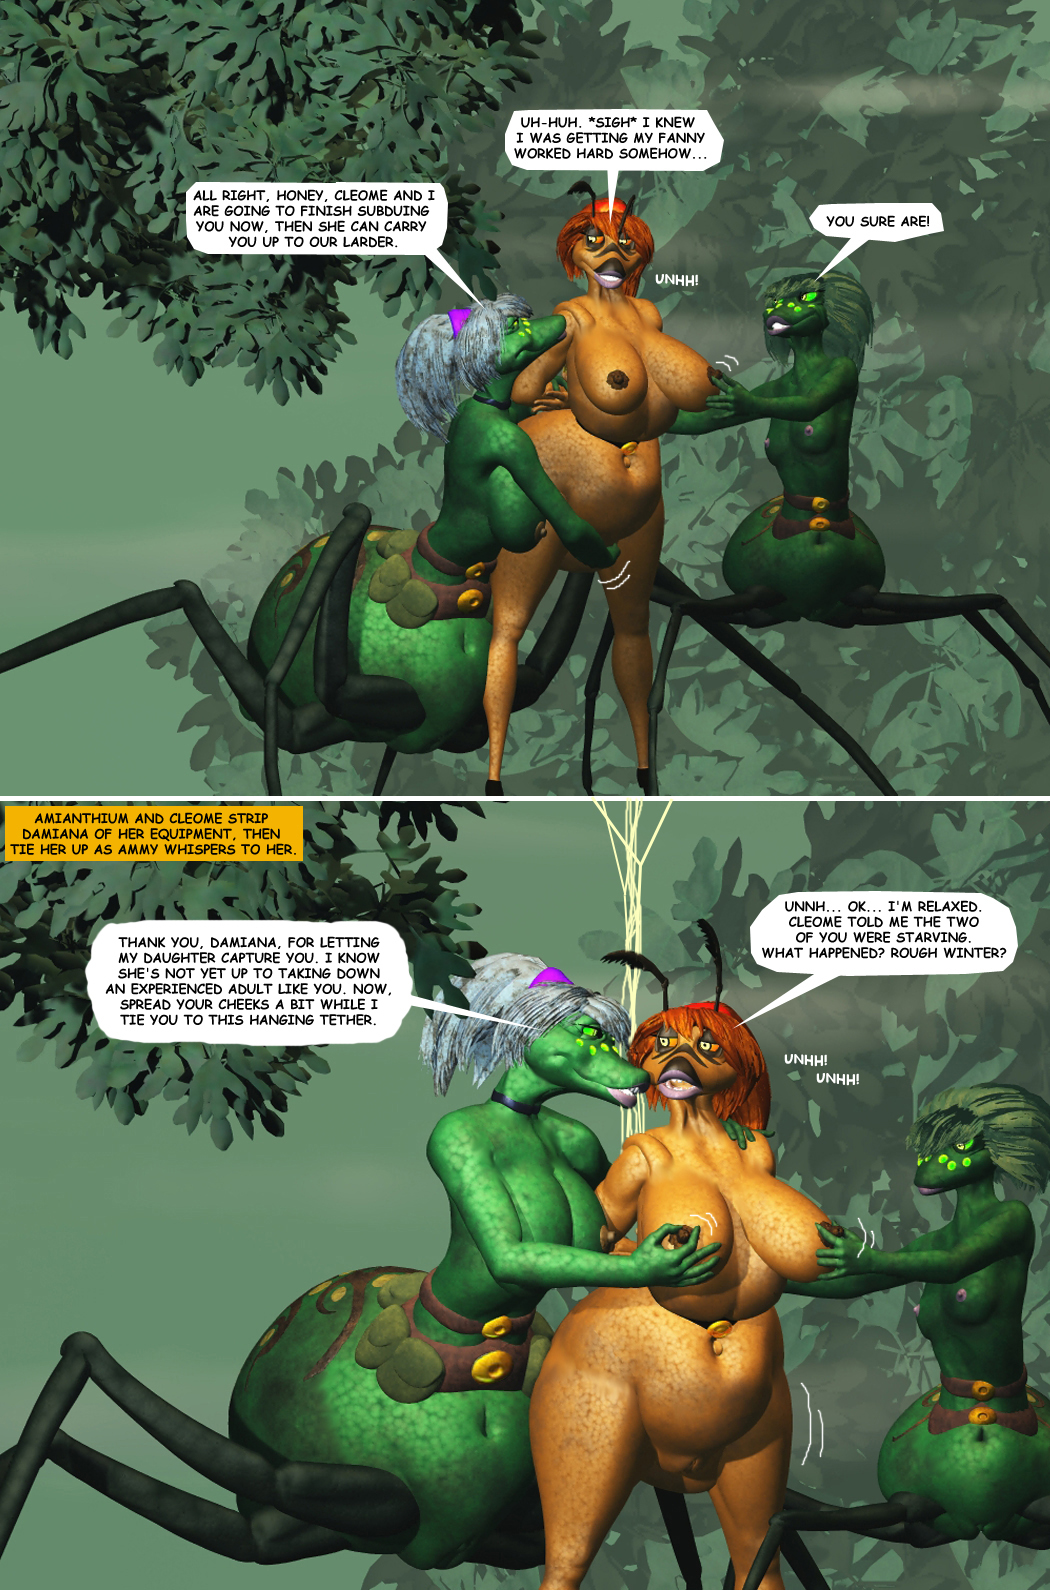 THE GAMES WE PLAY PAGE 35